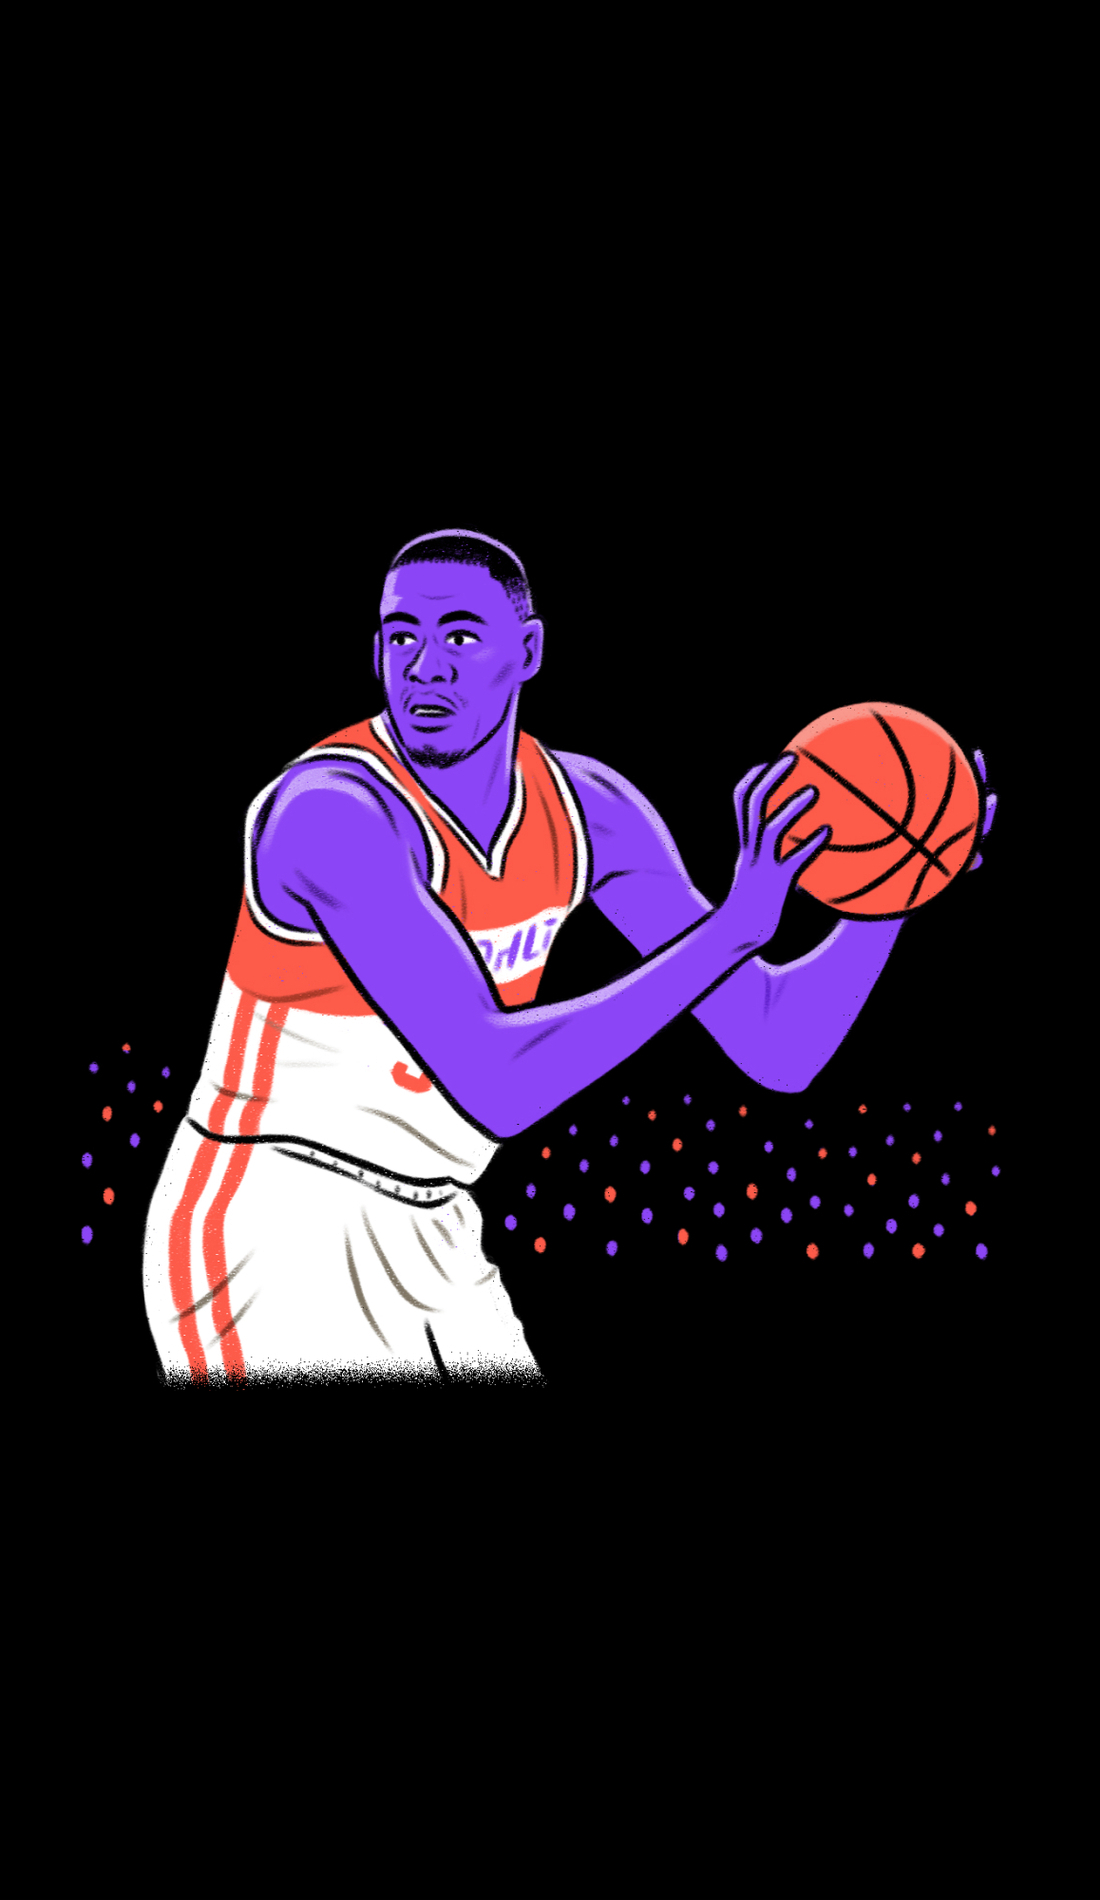 A UNLV Rebels Basketball live event